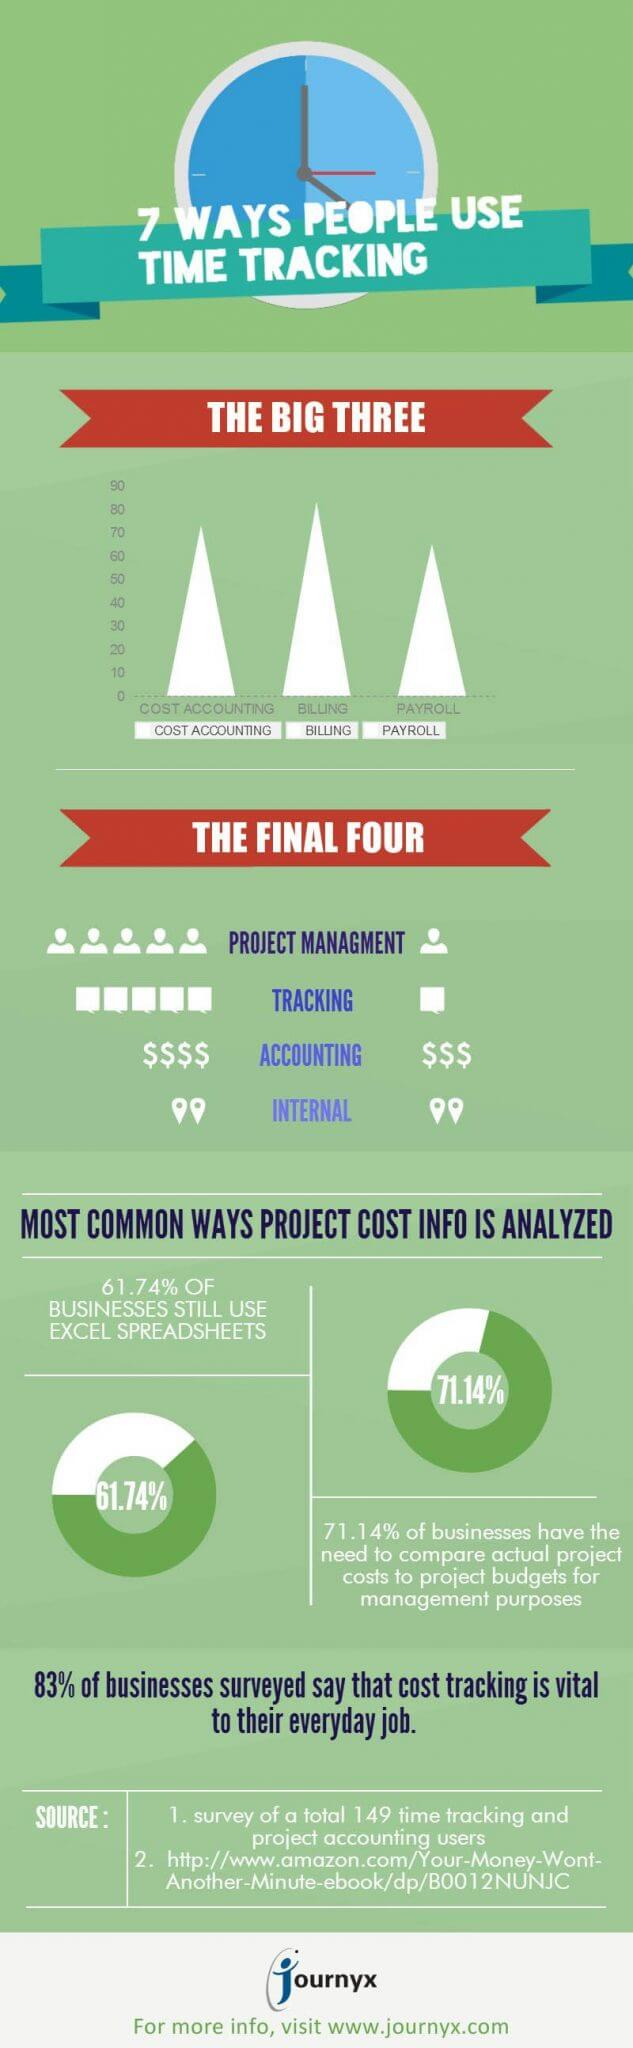 Top 7 Ways People Use Time Tracking Software infographic